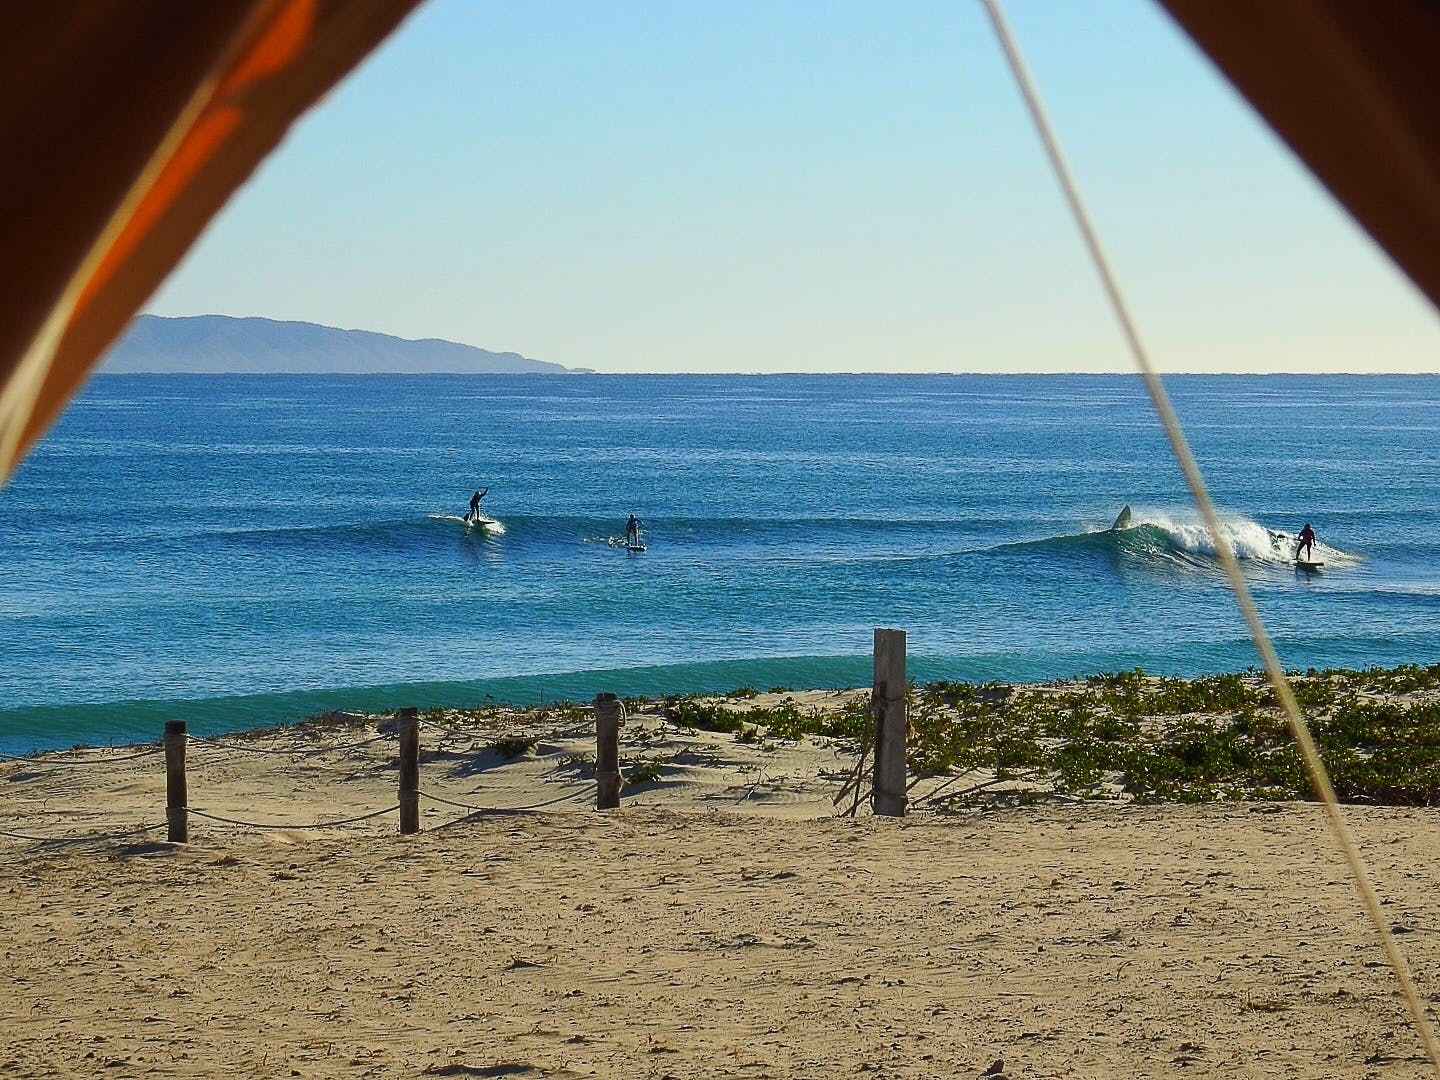 Surfing in La ventana? Yes in front of ChiloChill we have waves for surfing!